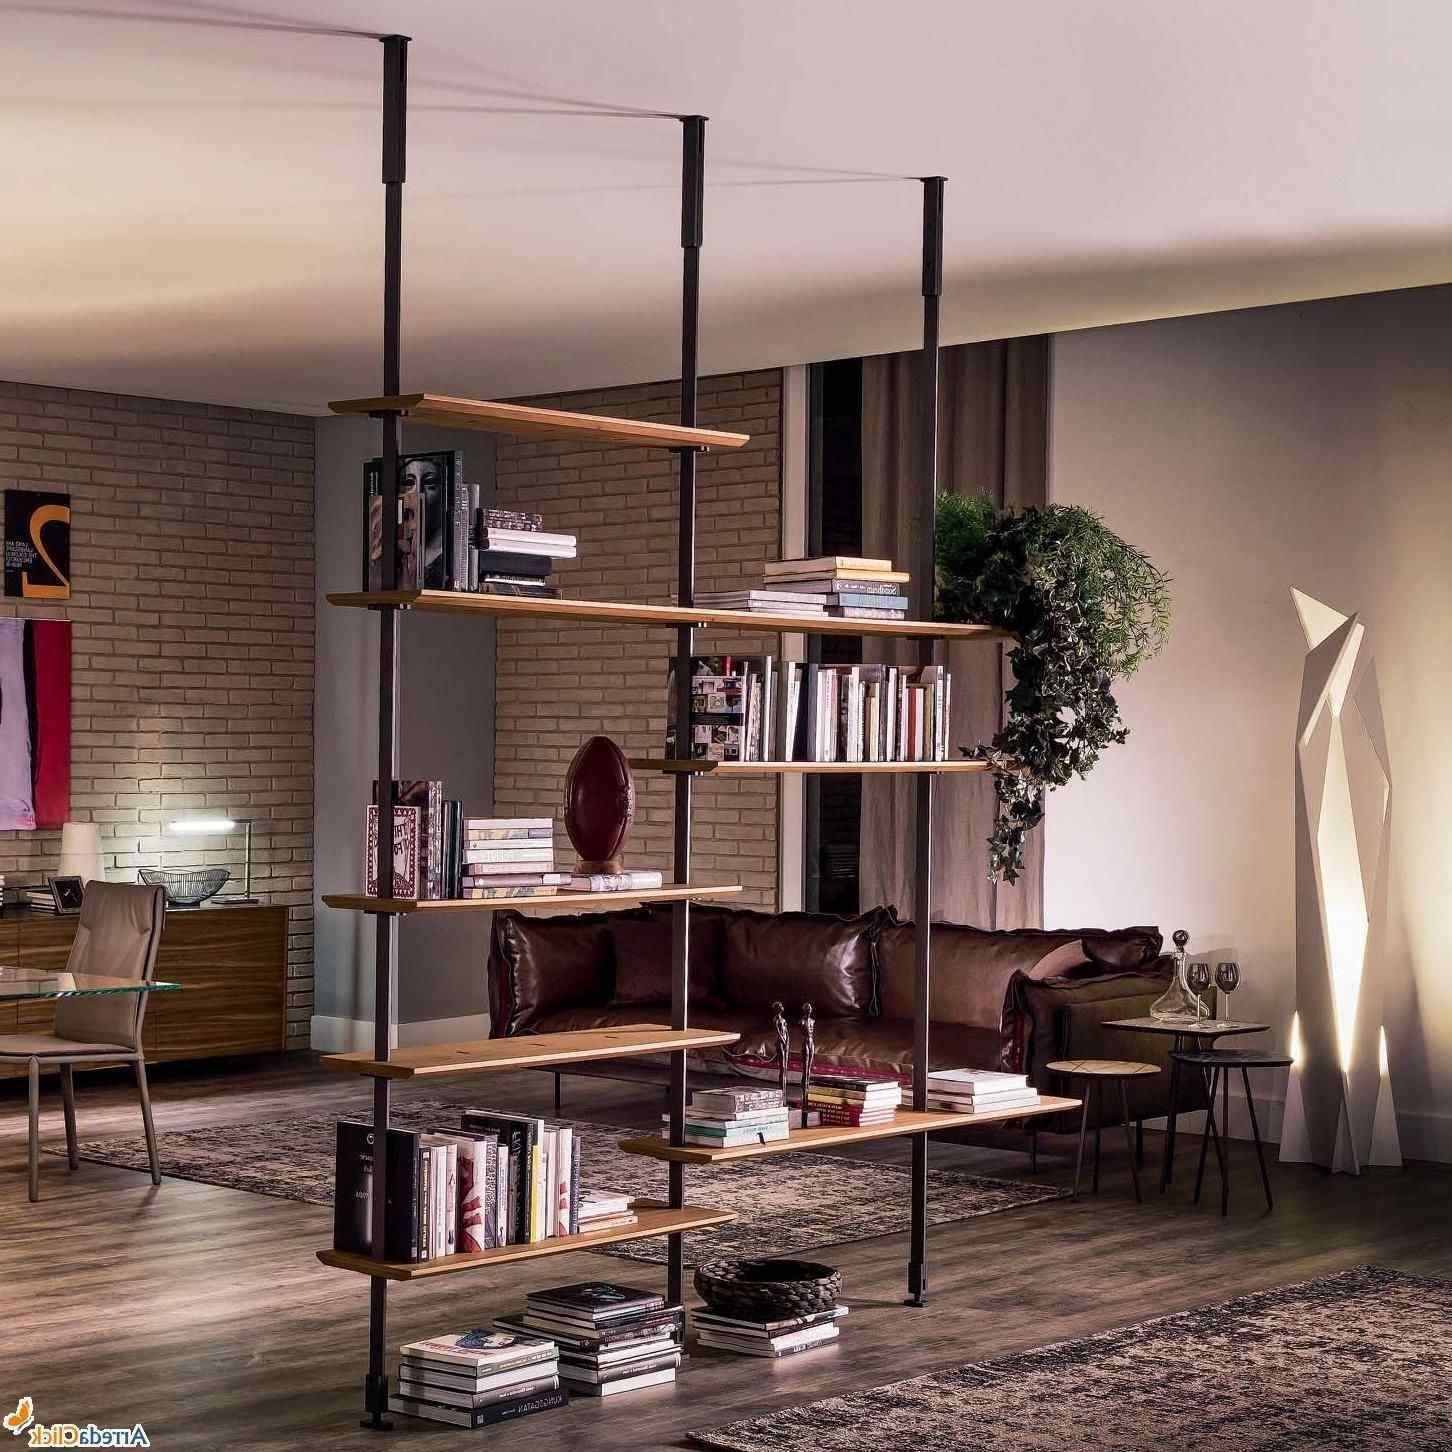 Room Dividers And Separators With Selves Design New Room Divider Ideas In Smart And Beaut Room Divider Ideas Studio Temporary Room Dividers Living Room Divider #separators #for #living #room